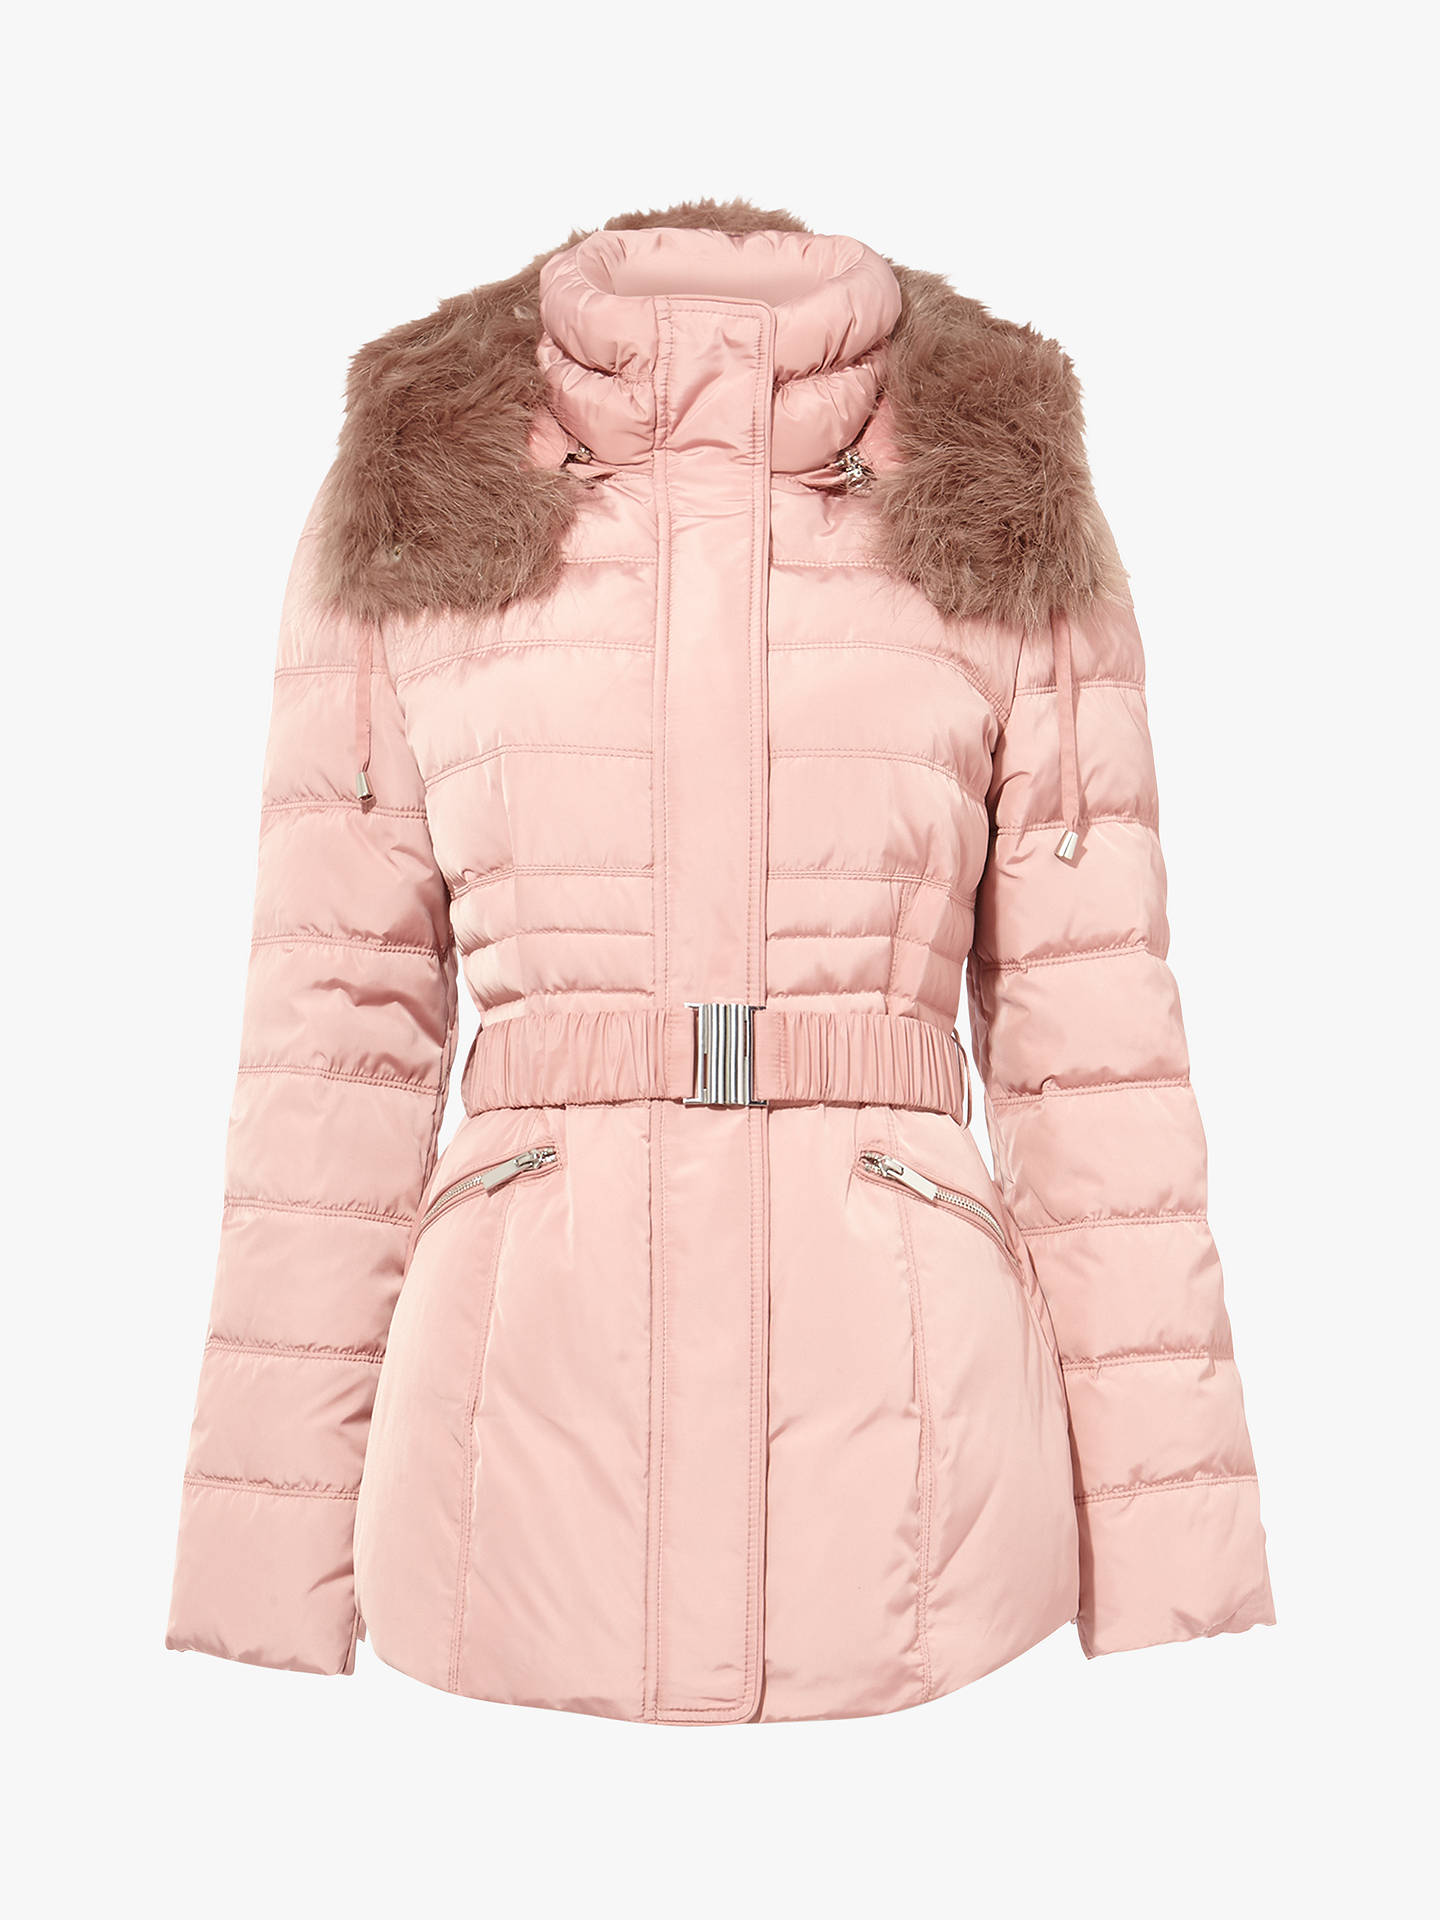 BuyPhase Eight Paula Puffer Jacket, Blush Pink, 16 Online at johnlewis.com